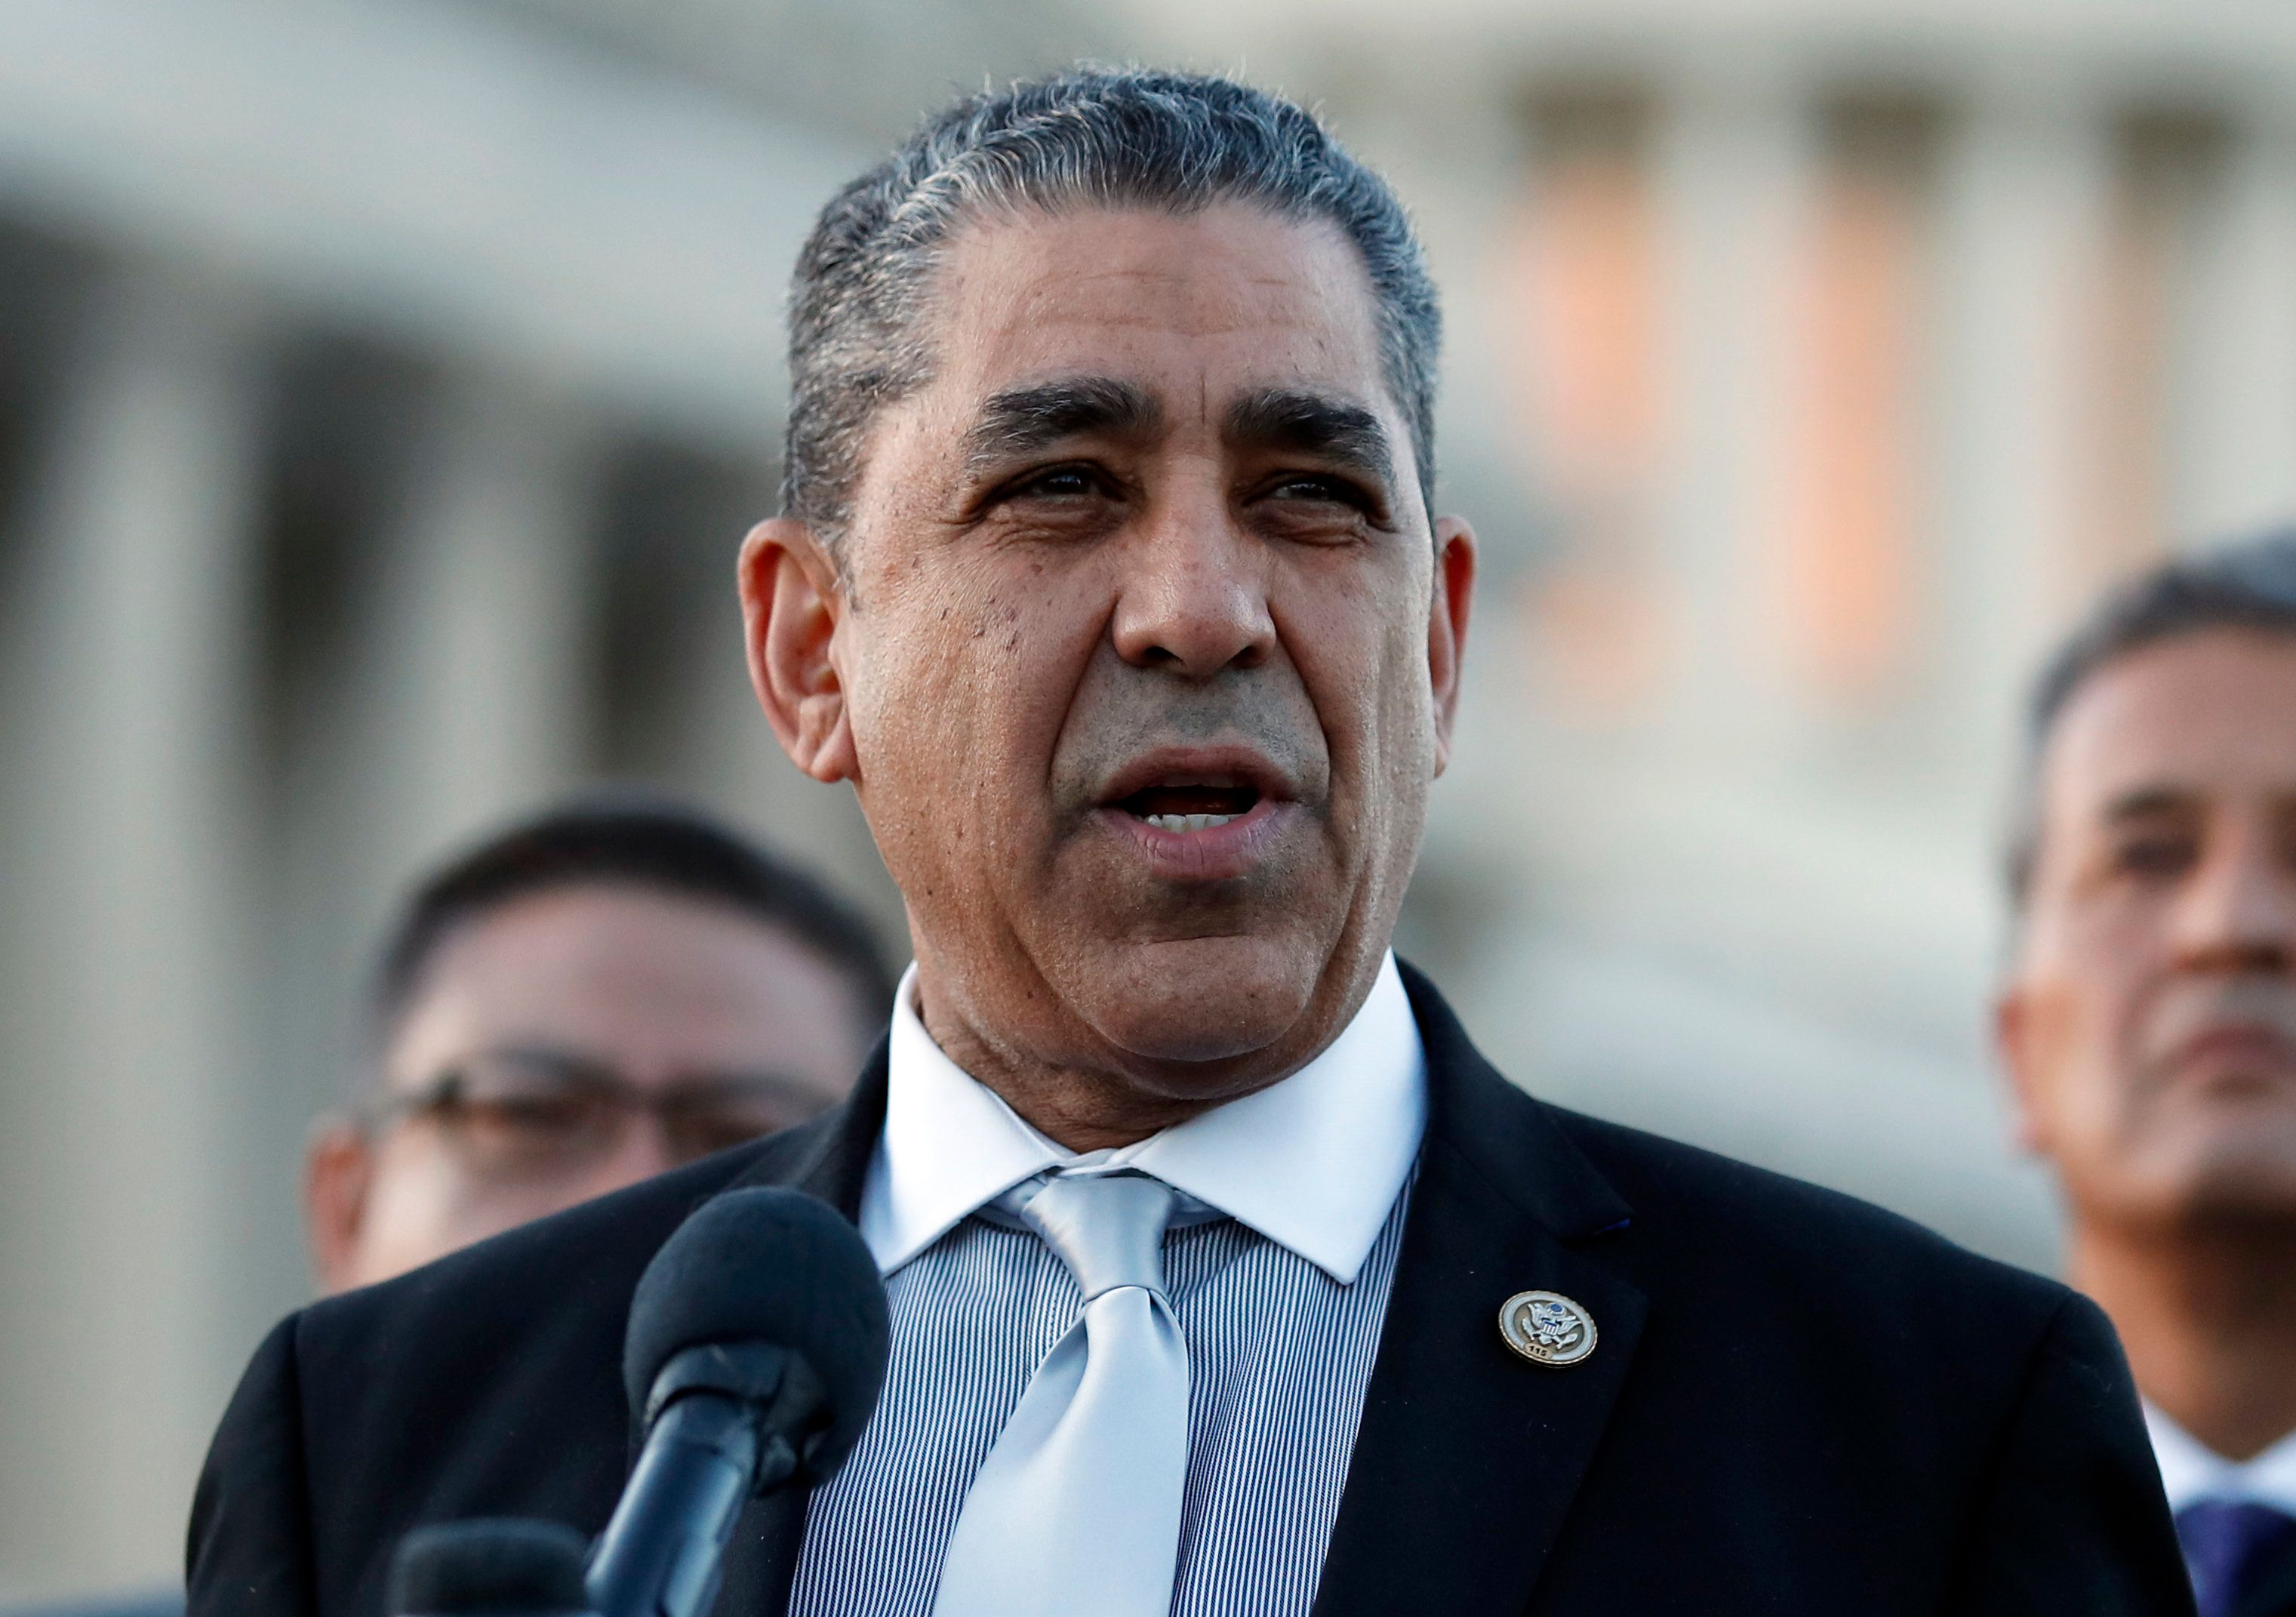 Rep. Adriano Espaillat, D-N.Y., of the Congressional Hispanic Caucus speaks about the Deferred Action for Childhood Arrivals (DACA) program during a news conference on Capitol Hill, Monday, March 5, 2018 in Washington. DACA is a program that temporarily shields hundreds of thousands of young people from deportation and was scheduled to end Monday, but court orders have forced the Trump administration to keep issuing renewals, easing the sense of urgency. (AP Photo/Alex Brandon)